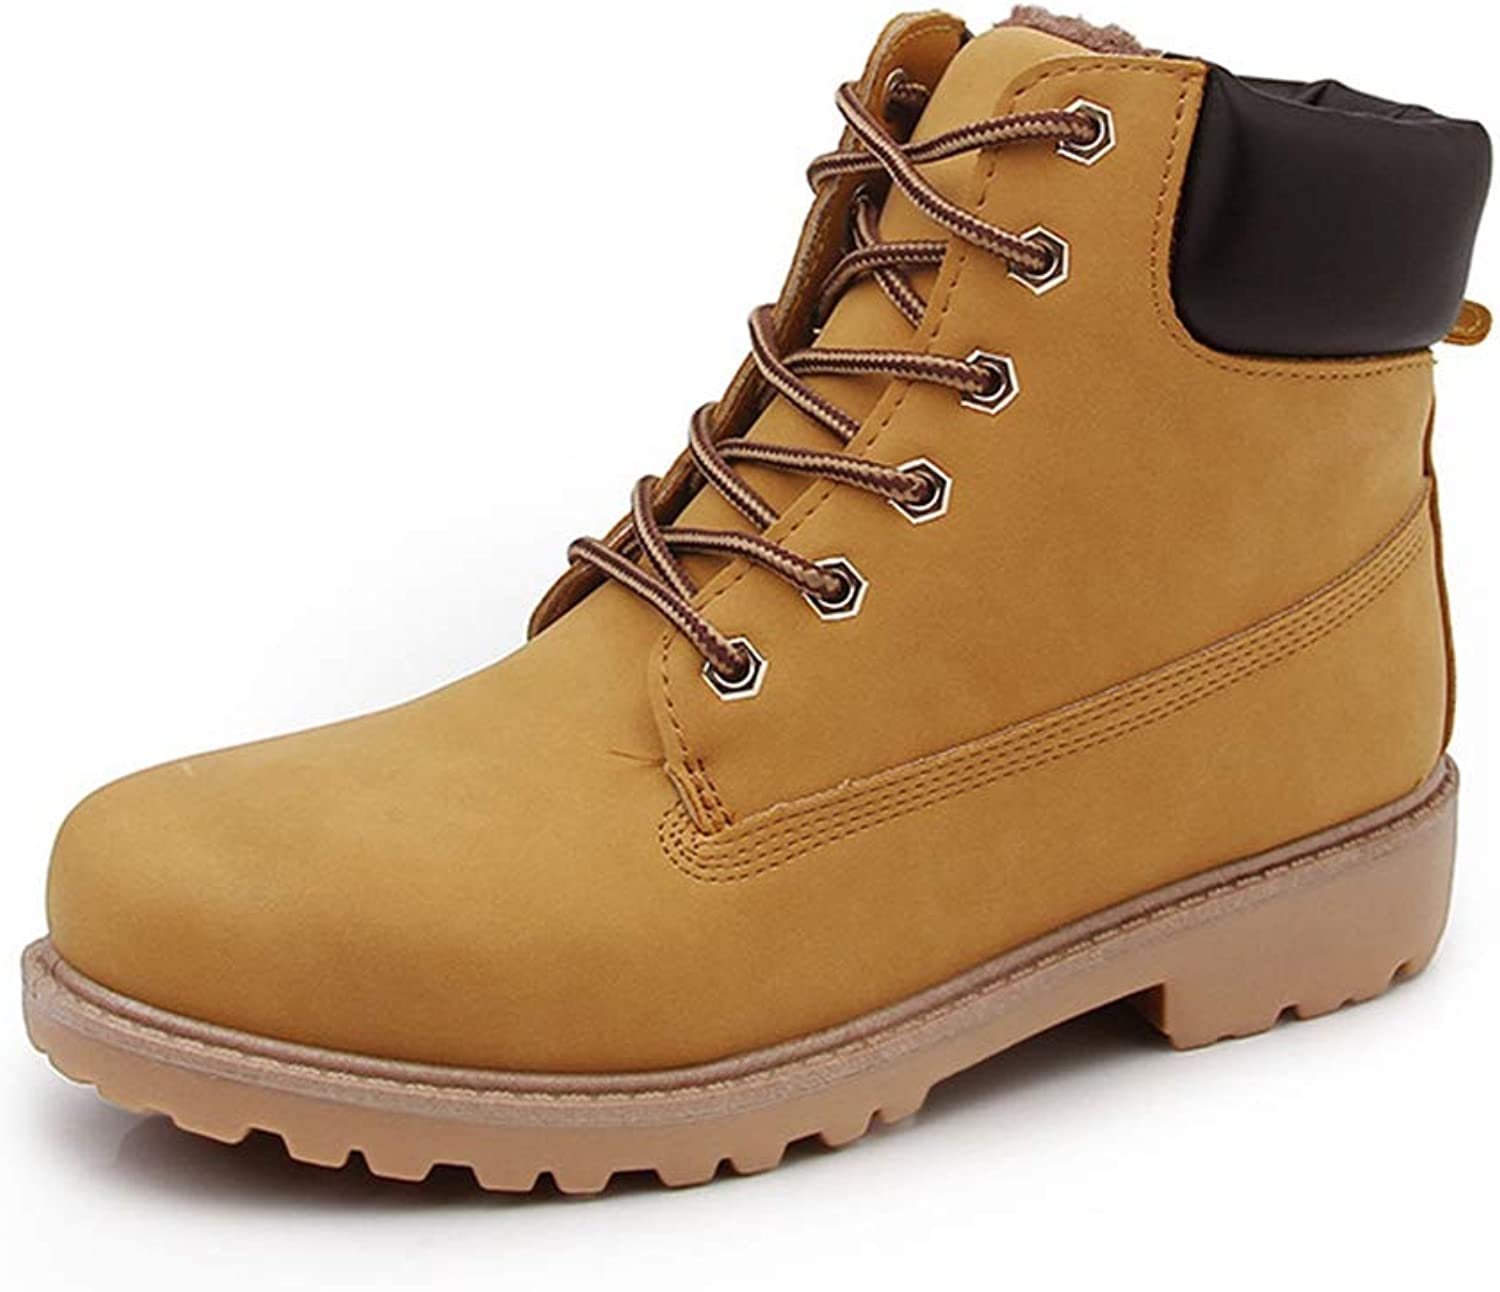 Women Casual Boots,Lace Up Ankle Combat Hiking Boots Work shoes Brown